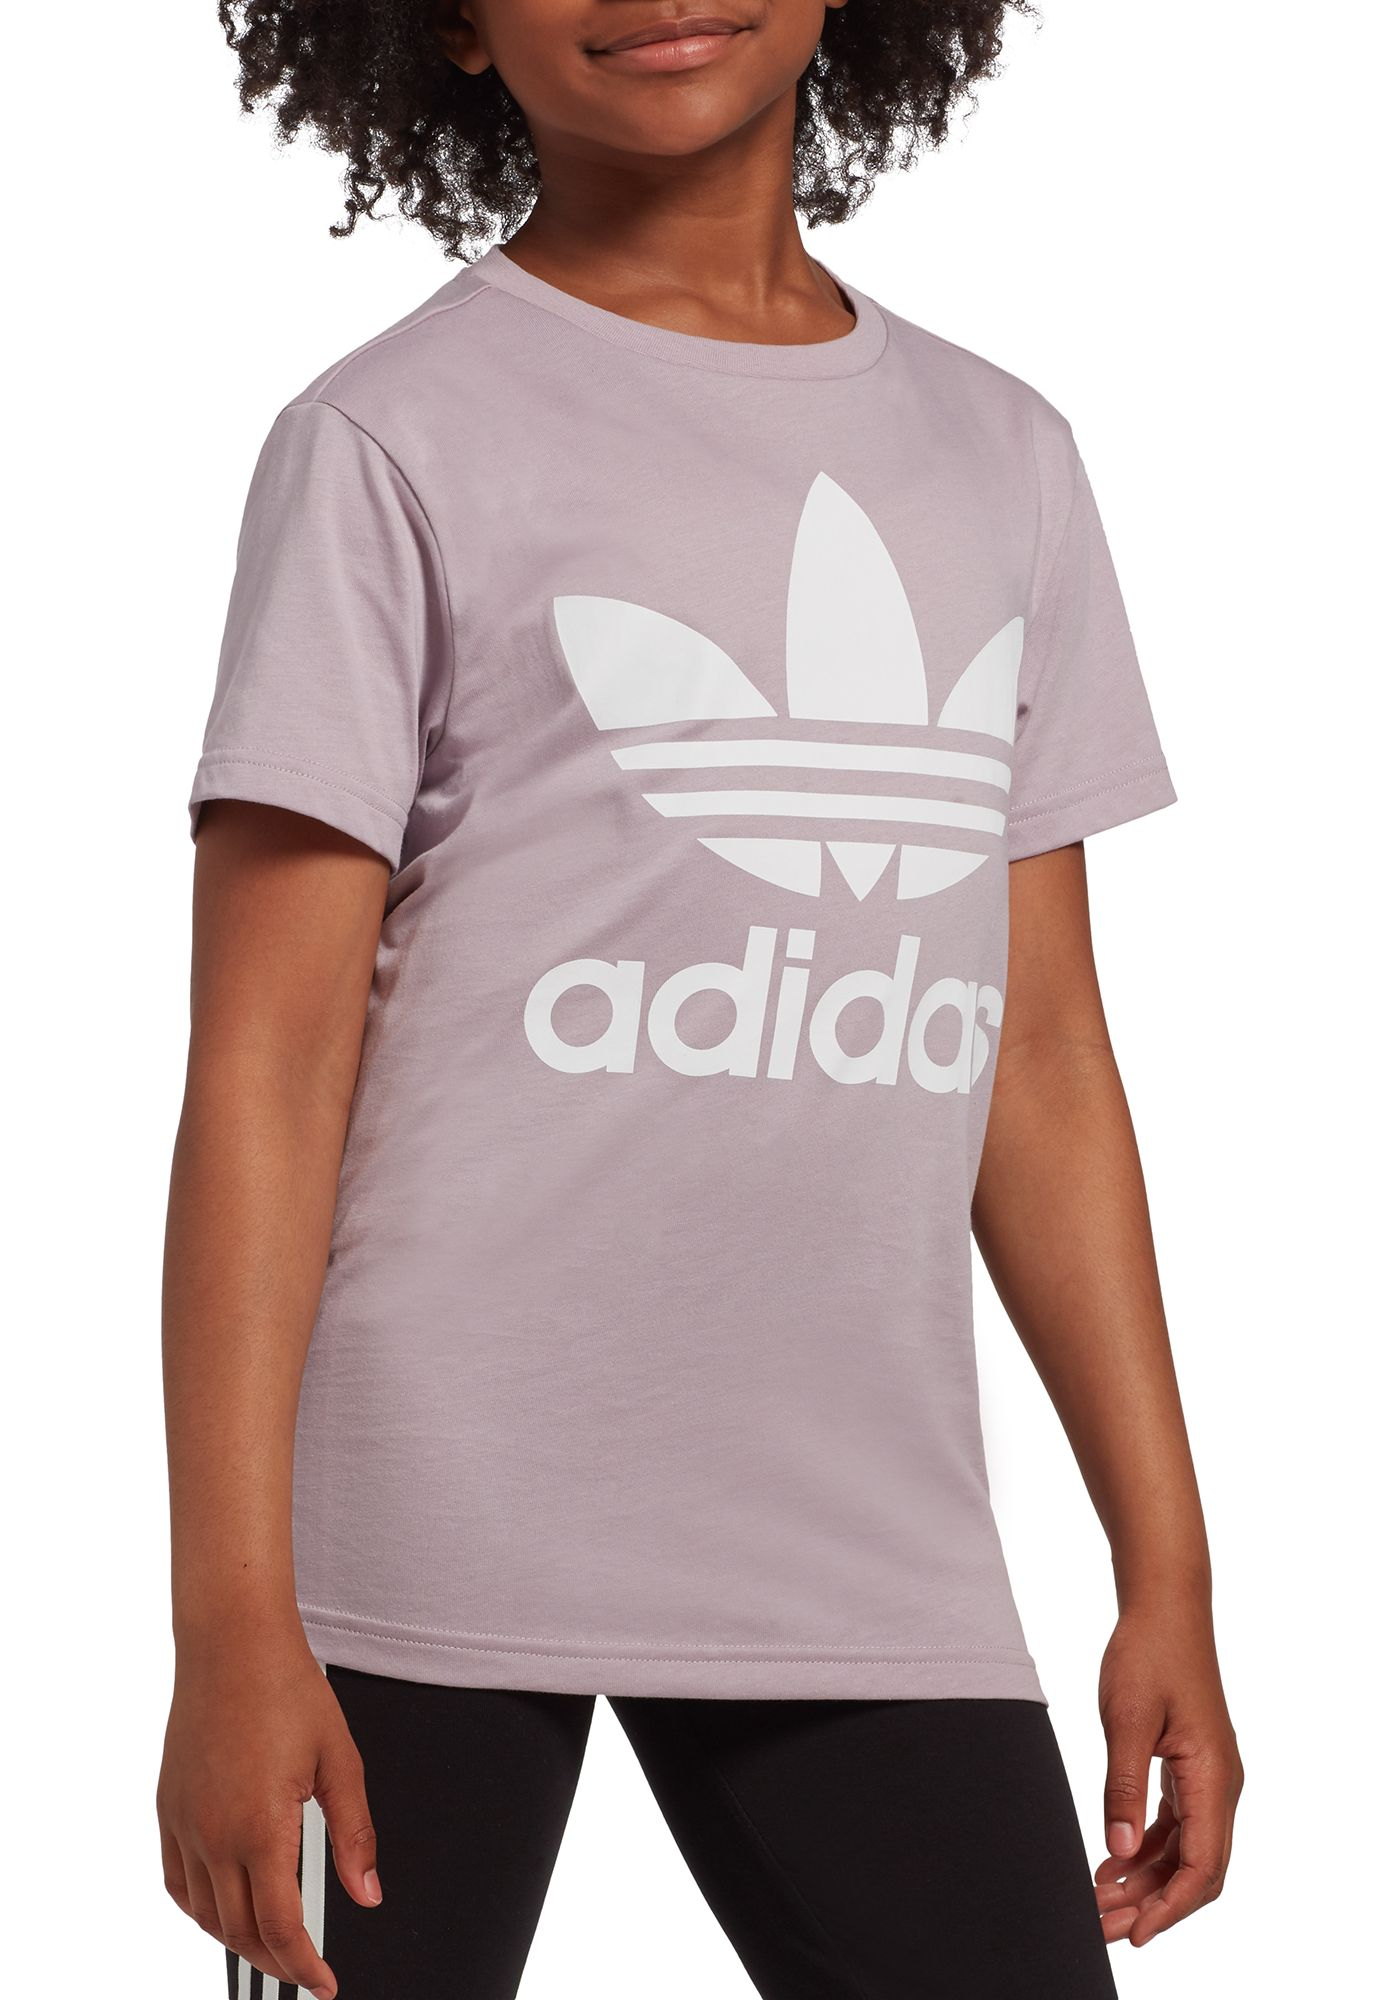 adidas Originals Girls' Trefoil Graphic T-Shirt